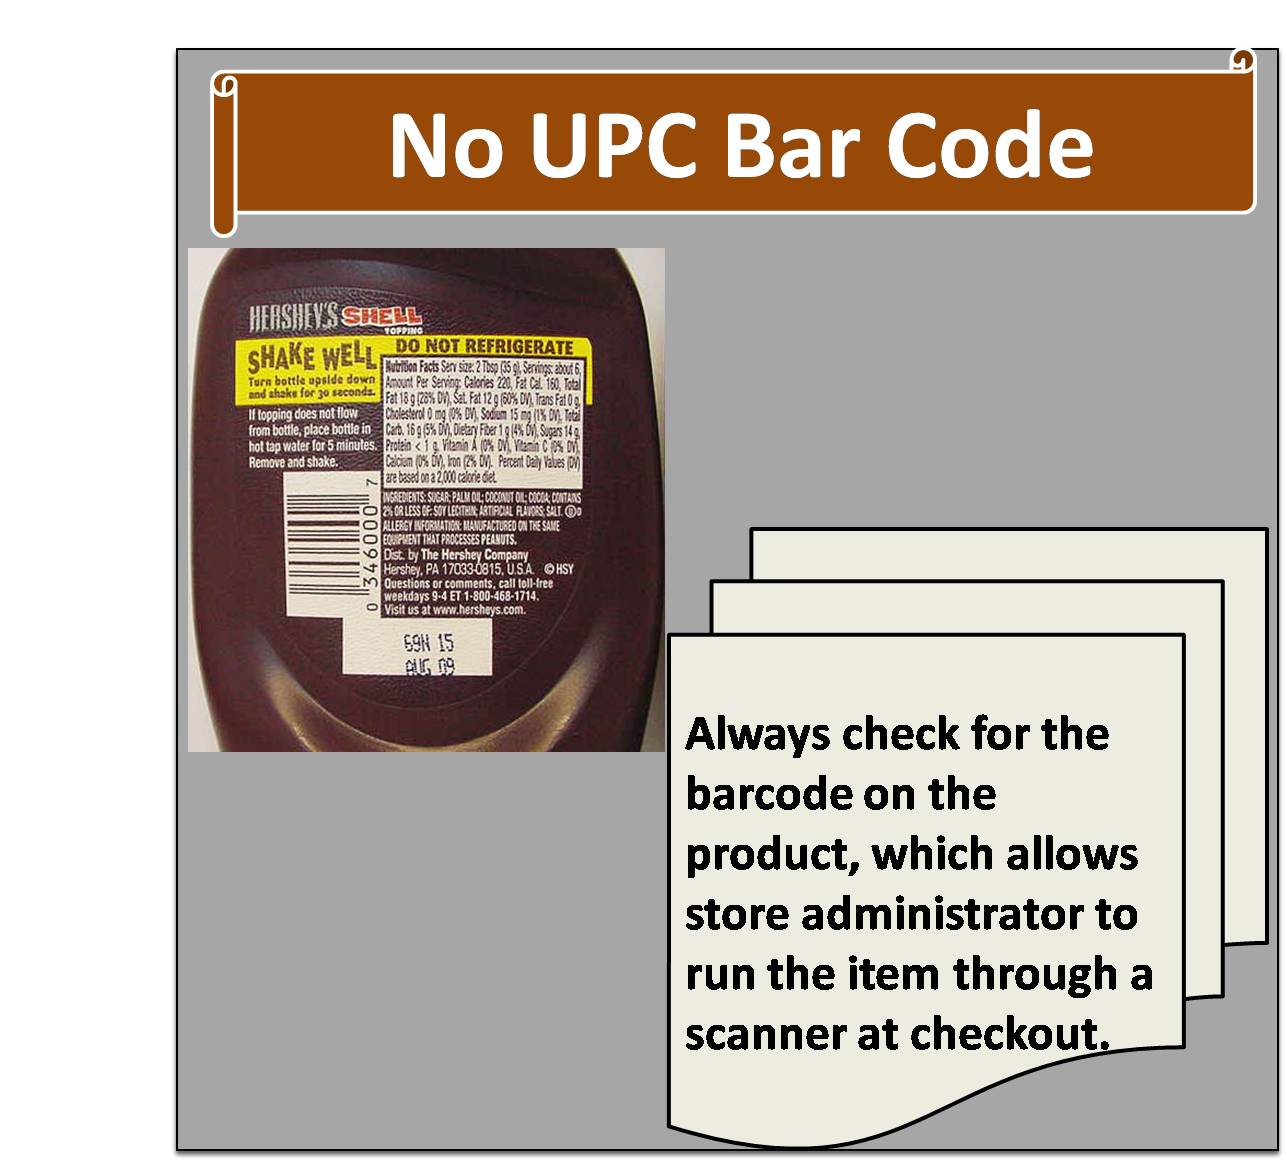 No UPC bar code